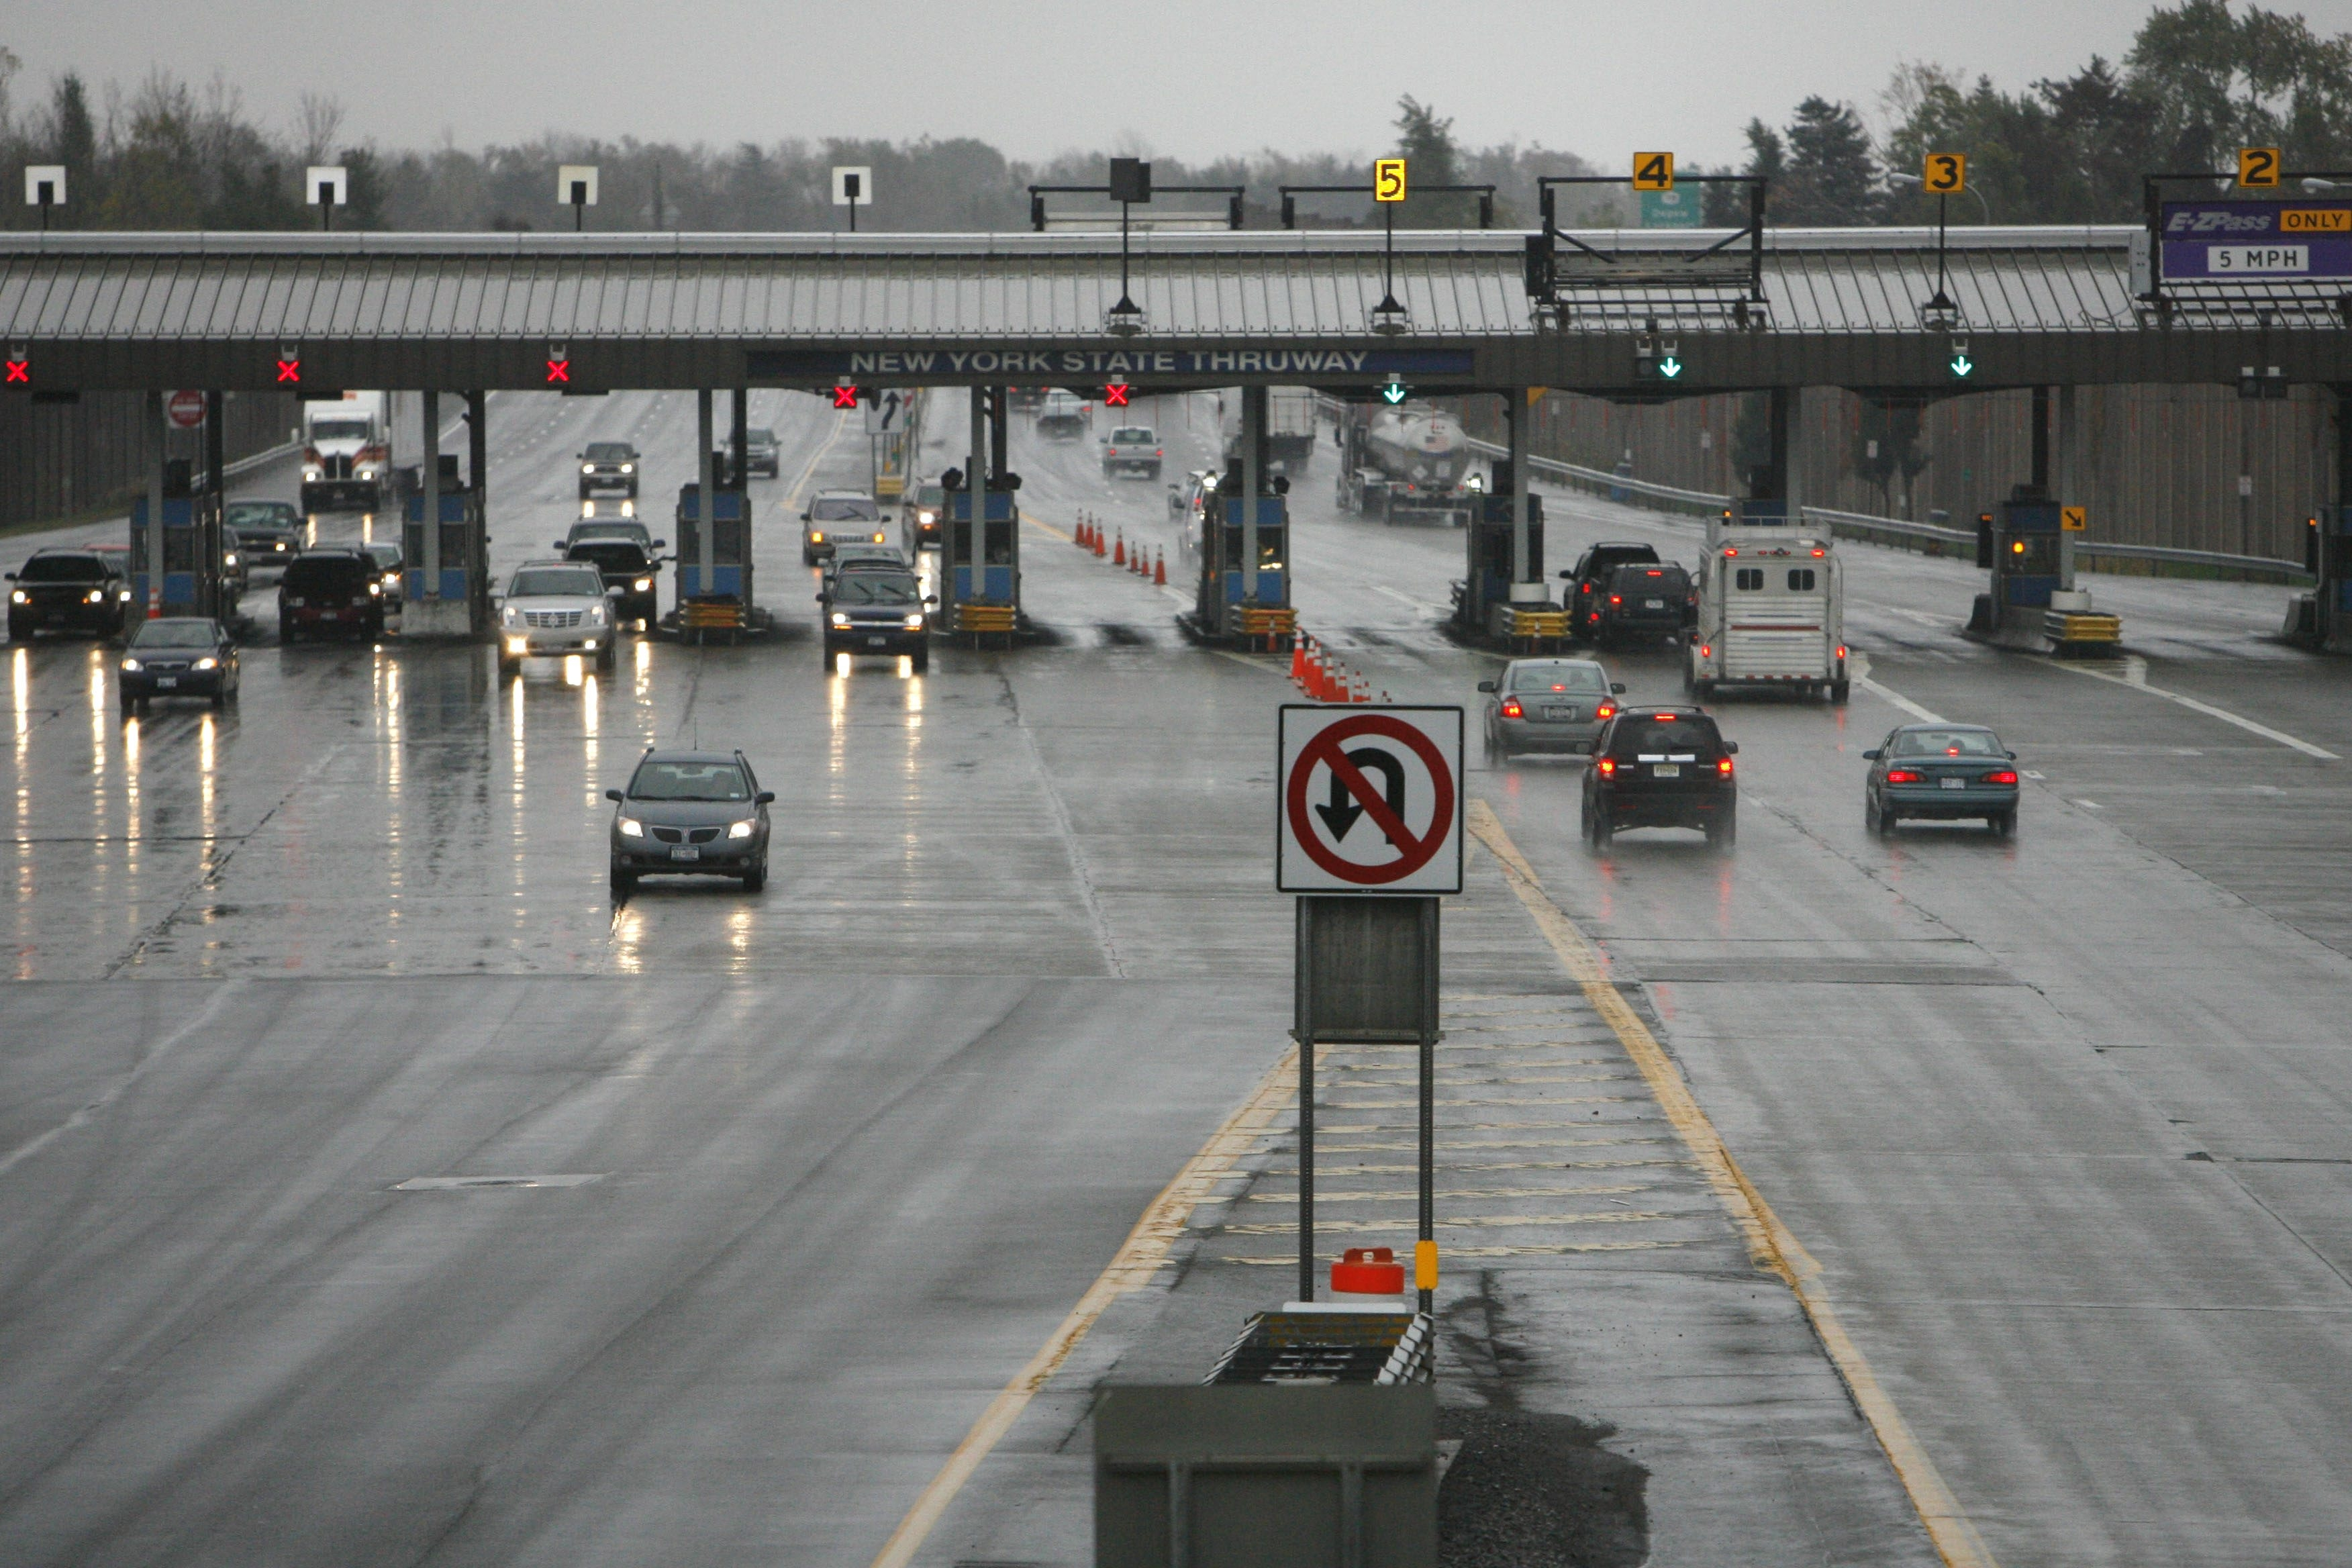 The heavy volume of traffic at the New York State Thruway's Williamsville toll barrier has led to calls for its relocation, but the Thruway Authority has been under pressure to reduce capital expenditures.